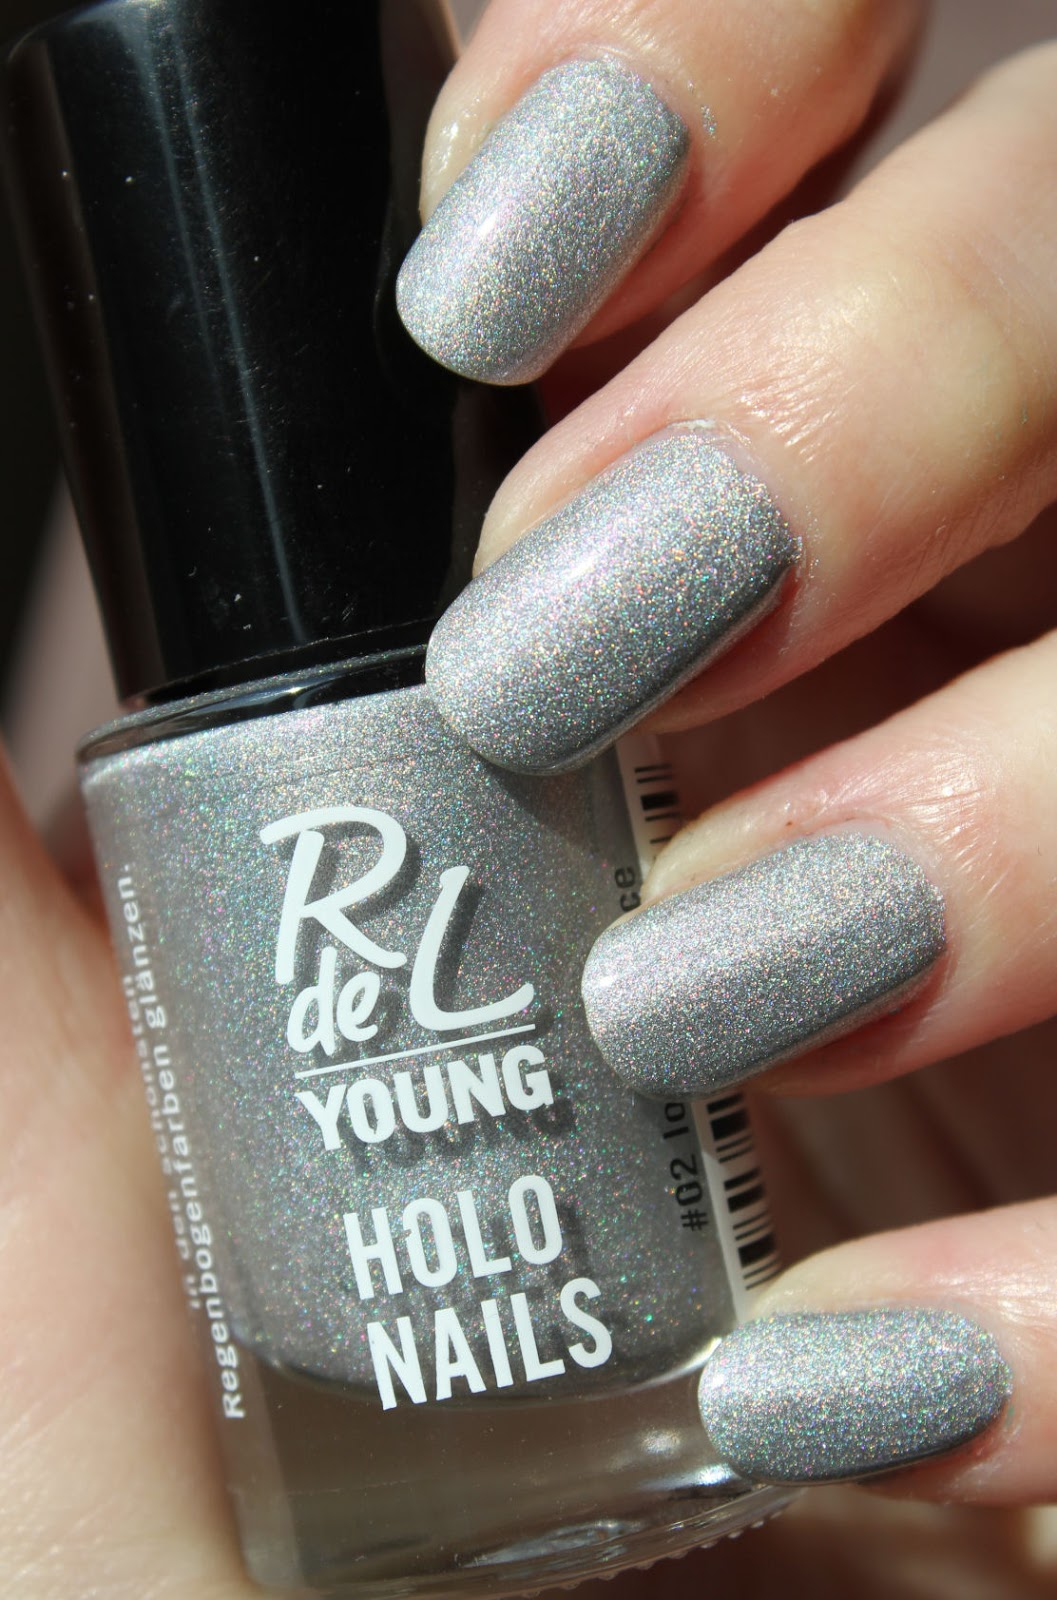 http://lacquediction.blogspot.de/2014/04/rival-de-loop-young-holo-nails-02-lost.html